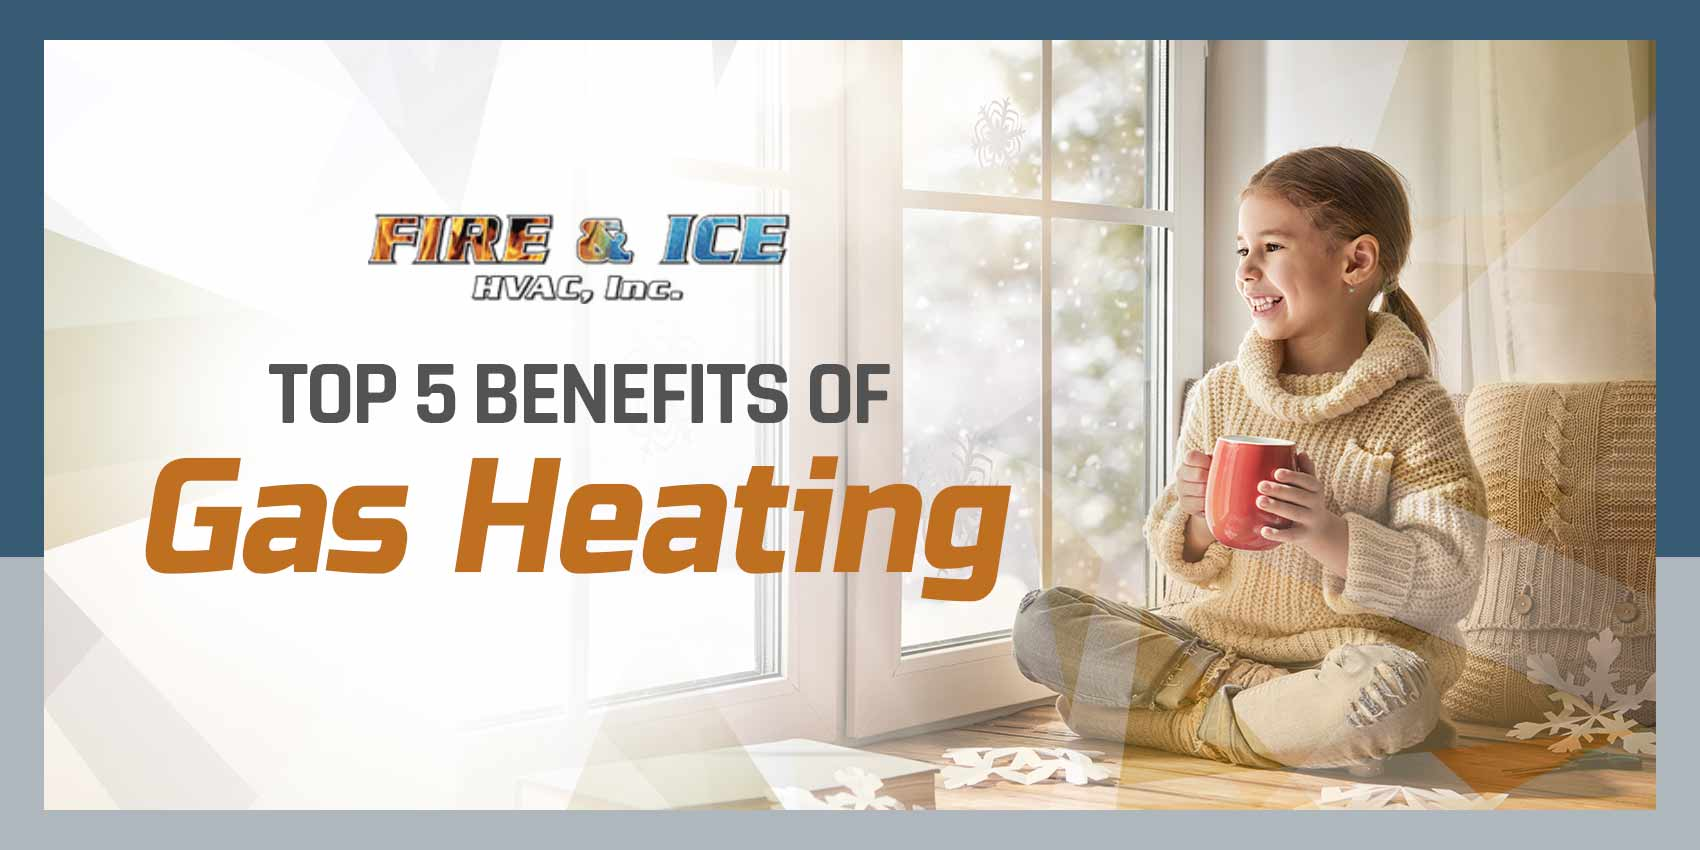 Top 5 Benefits of Gas Heating